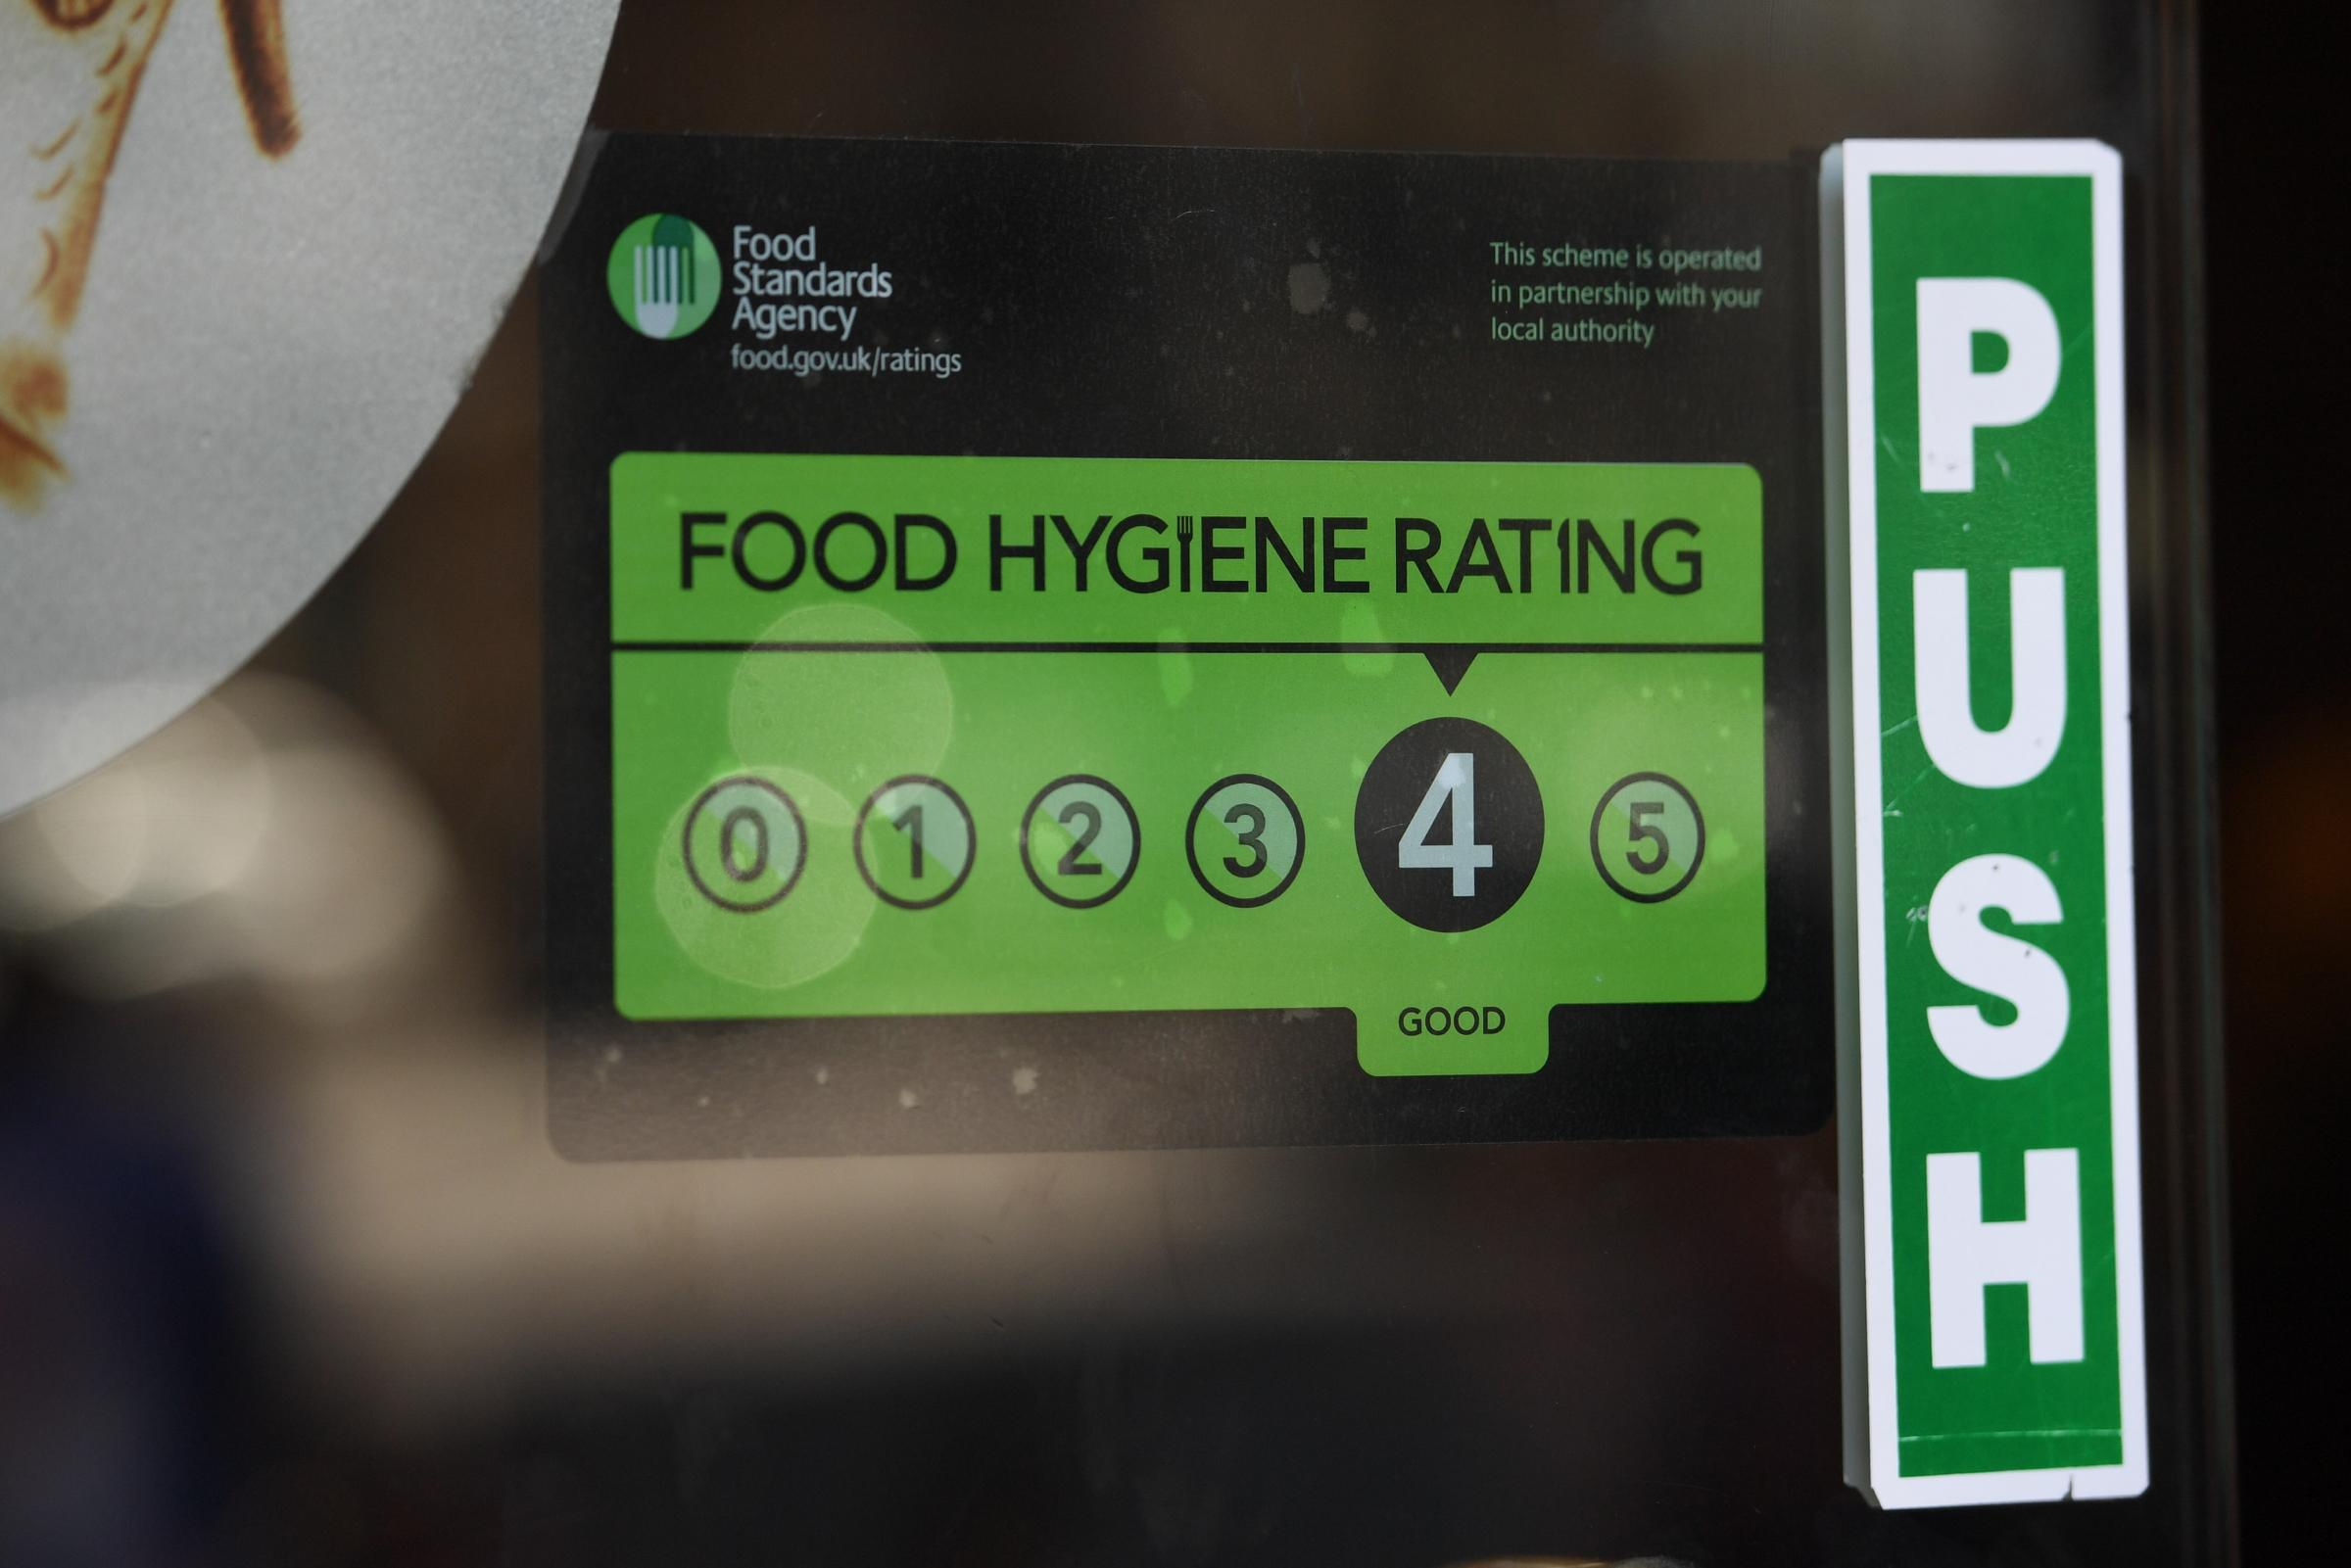 More than 500 Cornwall food businesses don't meet hygiene standards